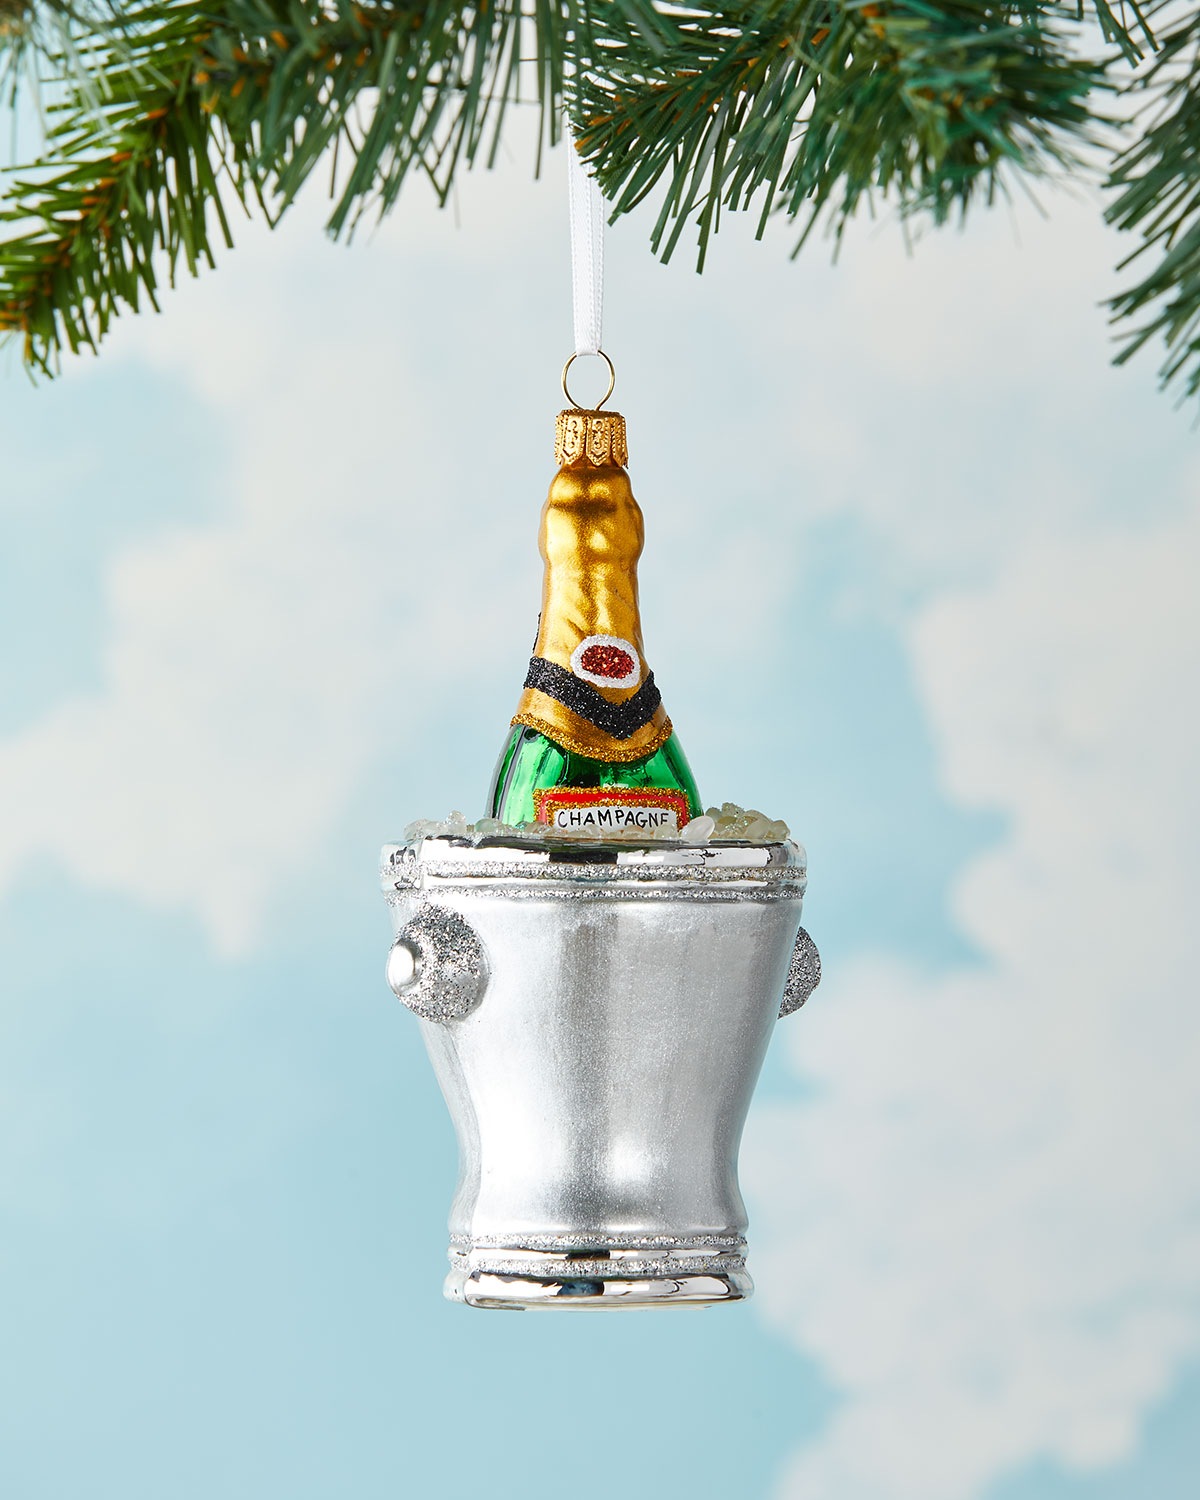 2021 champagne bucket ornament